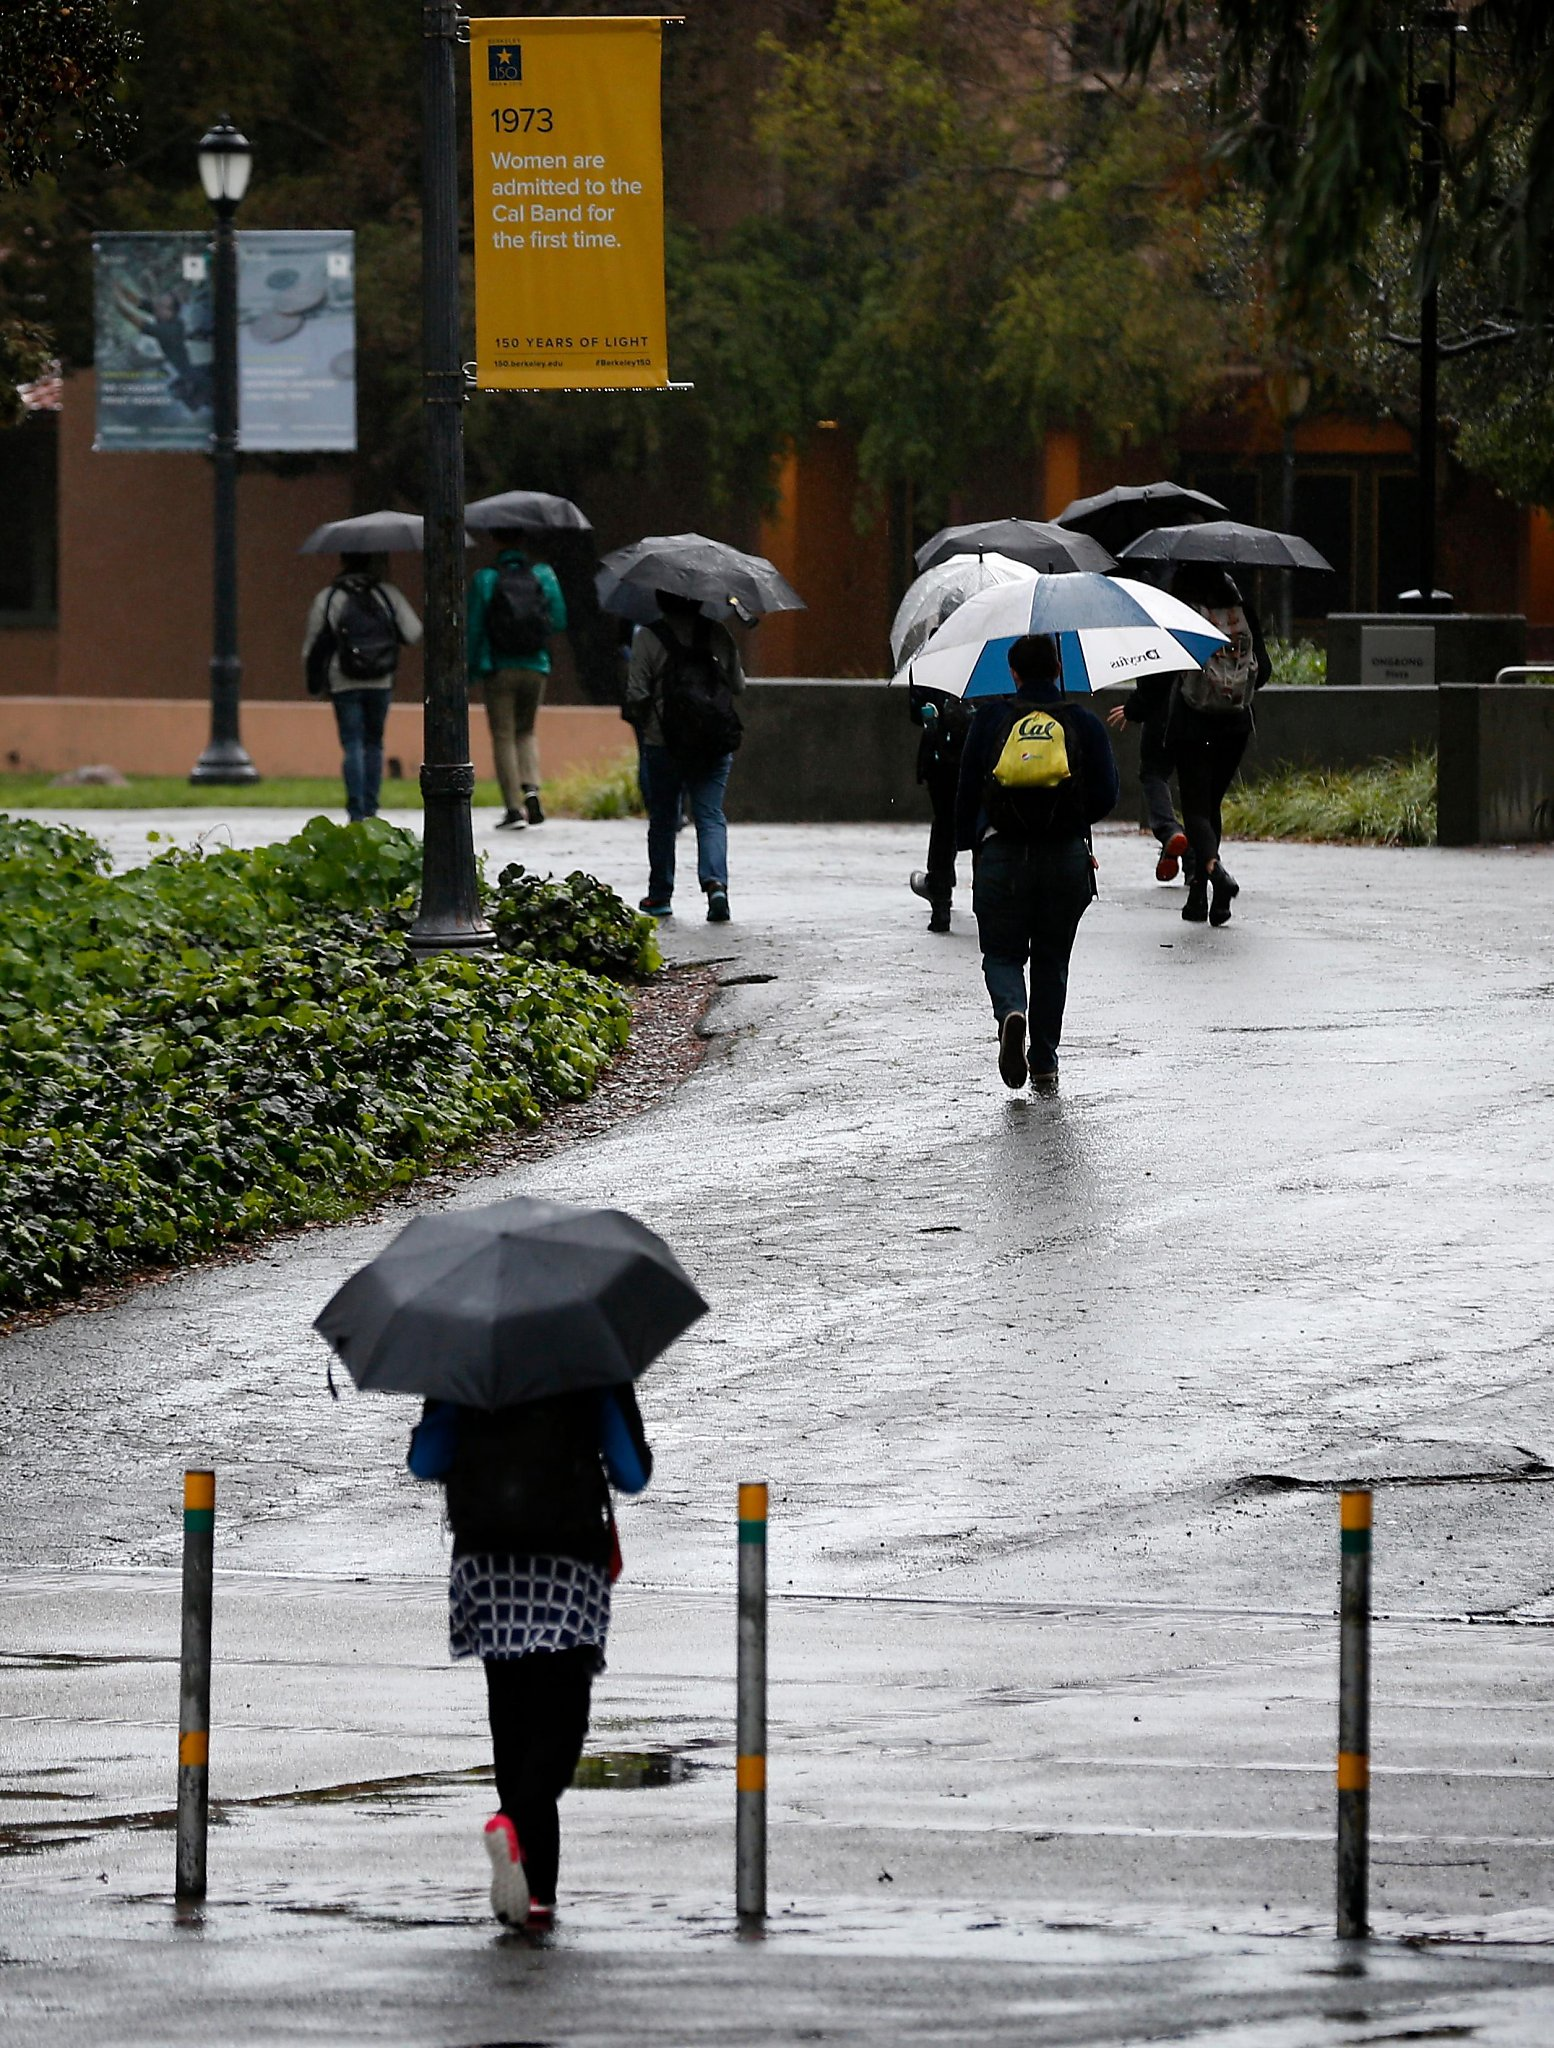 Atmospheric river set to bring thunderstorms to Bay Area | San Francisco Gate